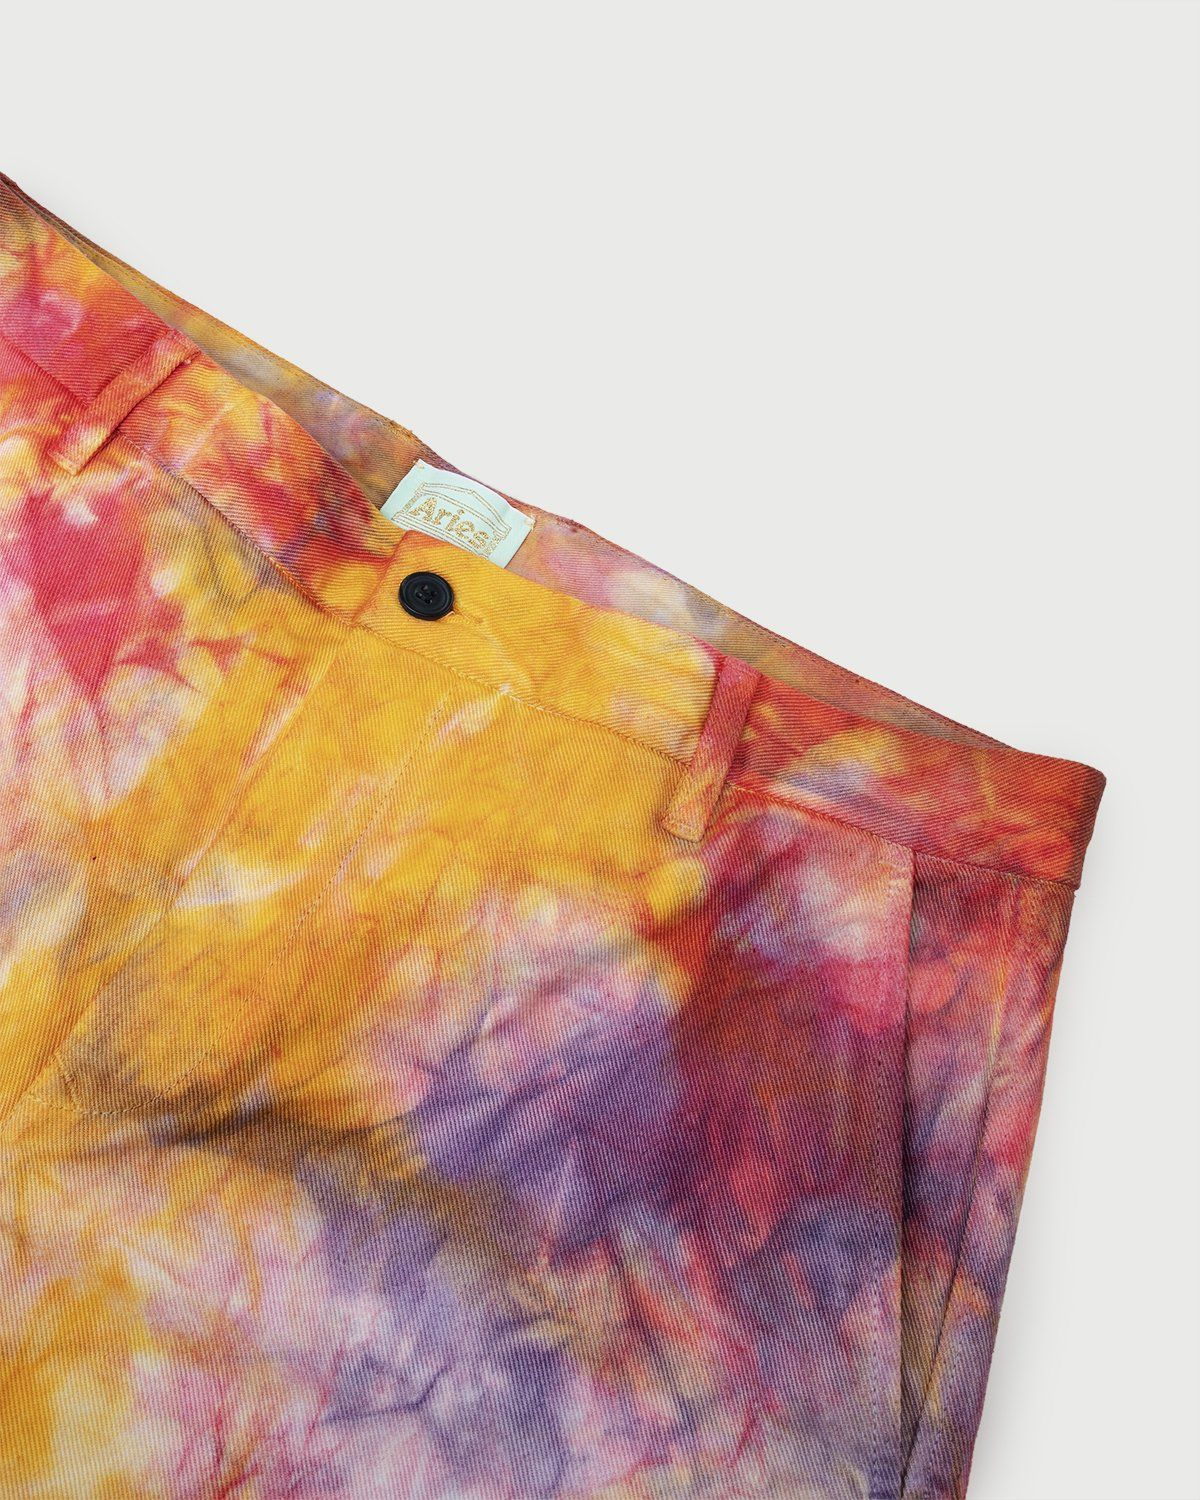 Aries - Tie Dye Chino Shorts Multicolor - Image 2